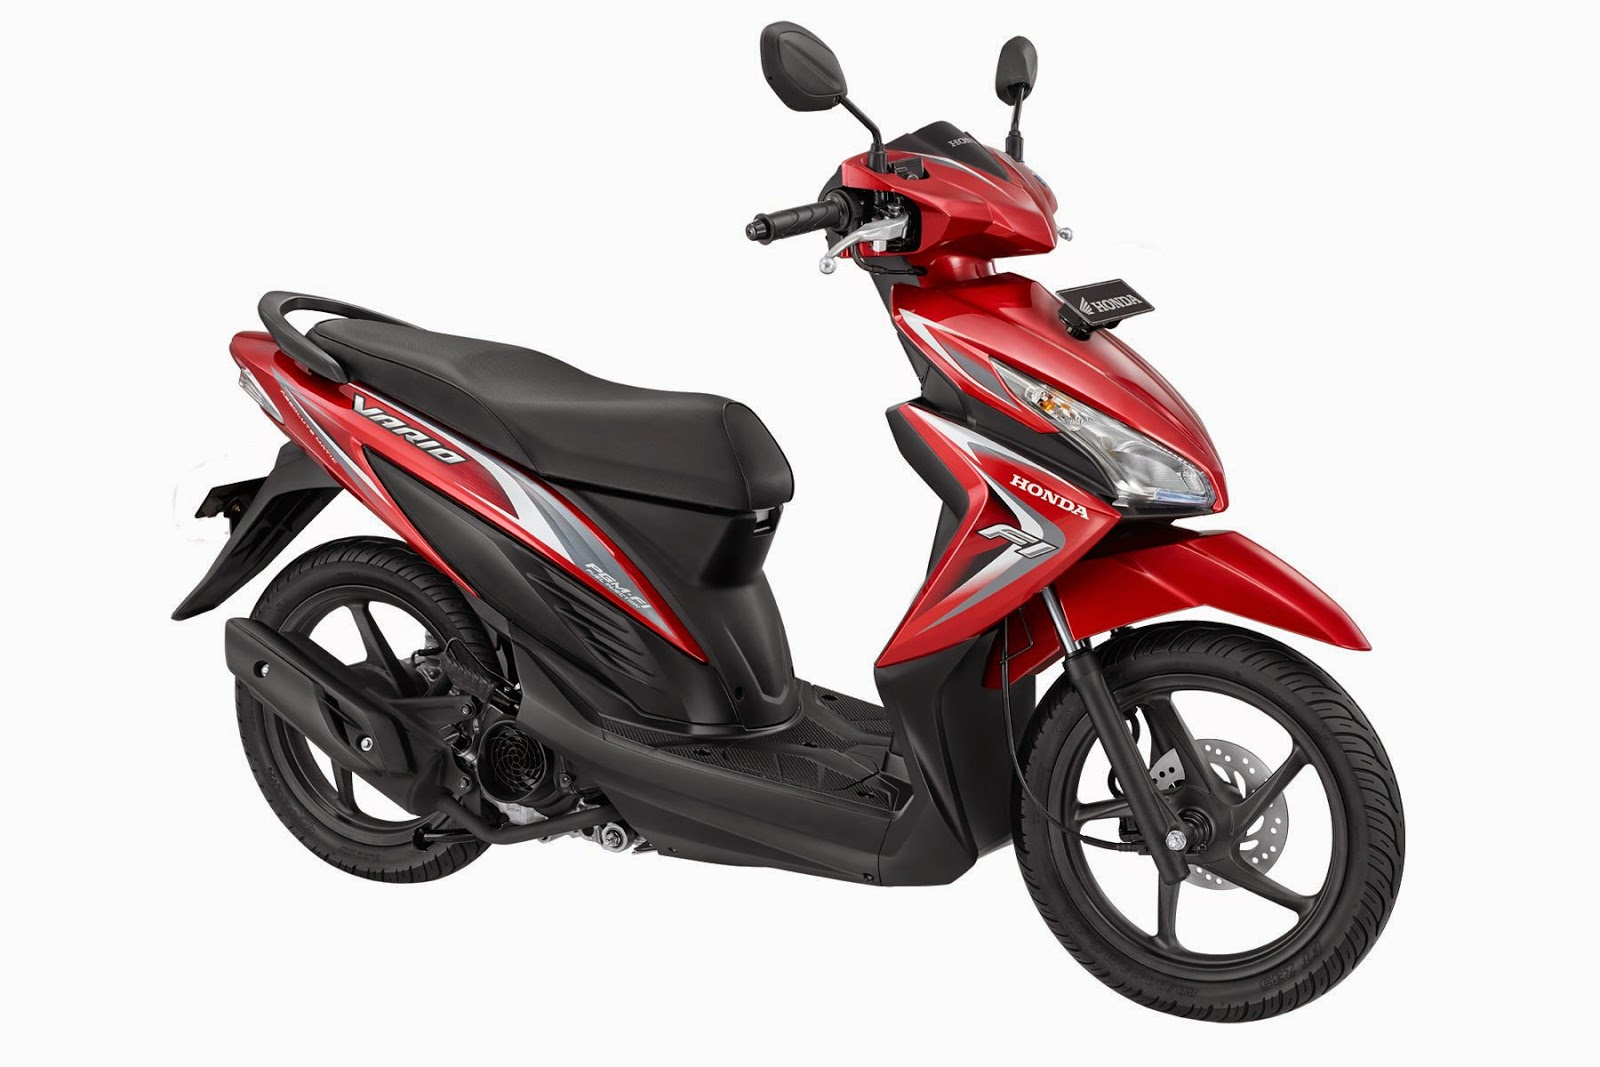 NEW Modifikasi Motor Honda Vario Techno 125 PGM - YouTube - Holiday ...